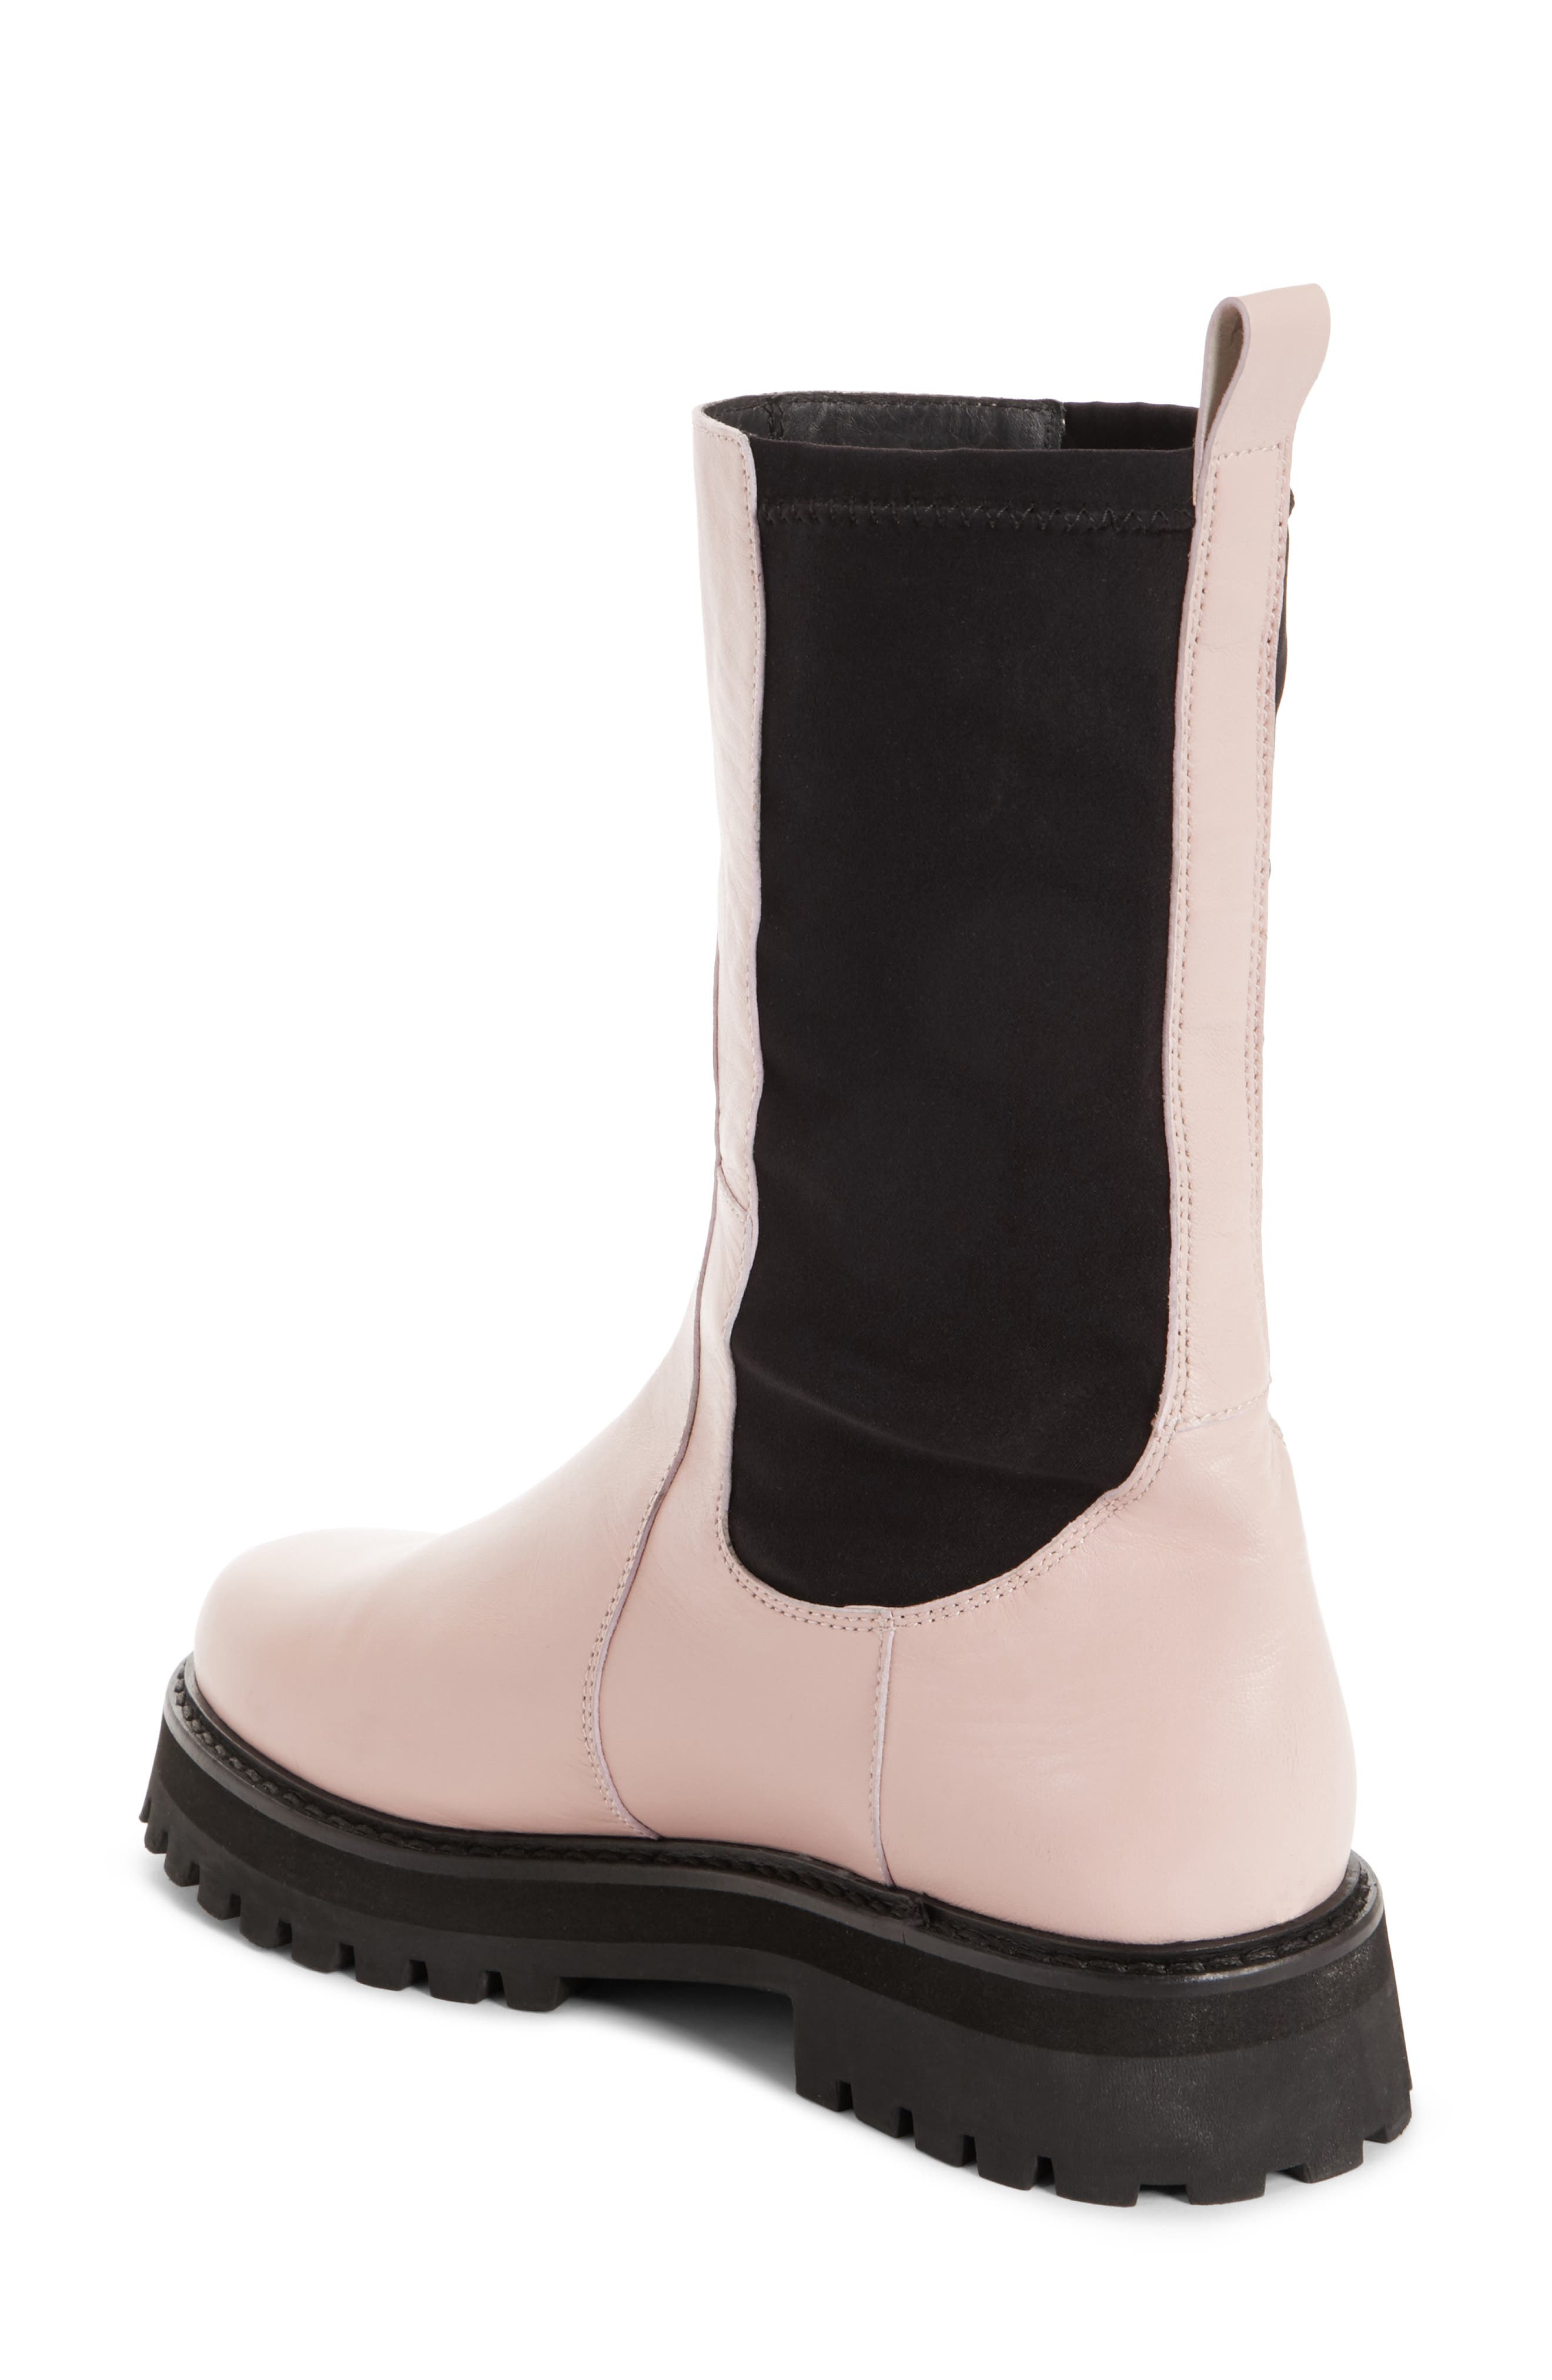 Marques'Almeida Army Boot,                             Alternate thumbnail 2, color,                             Pale Pink